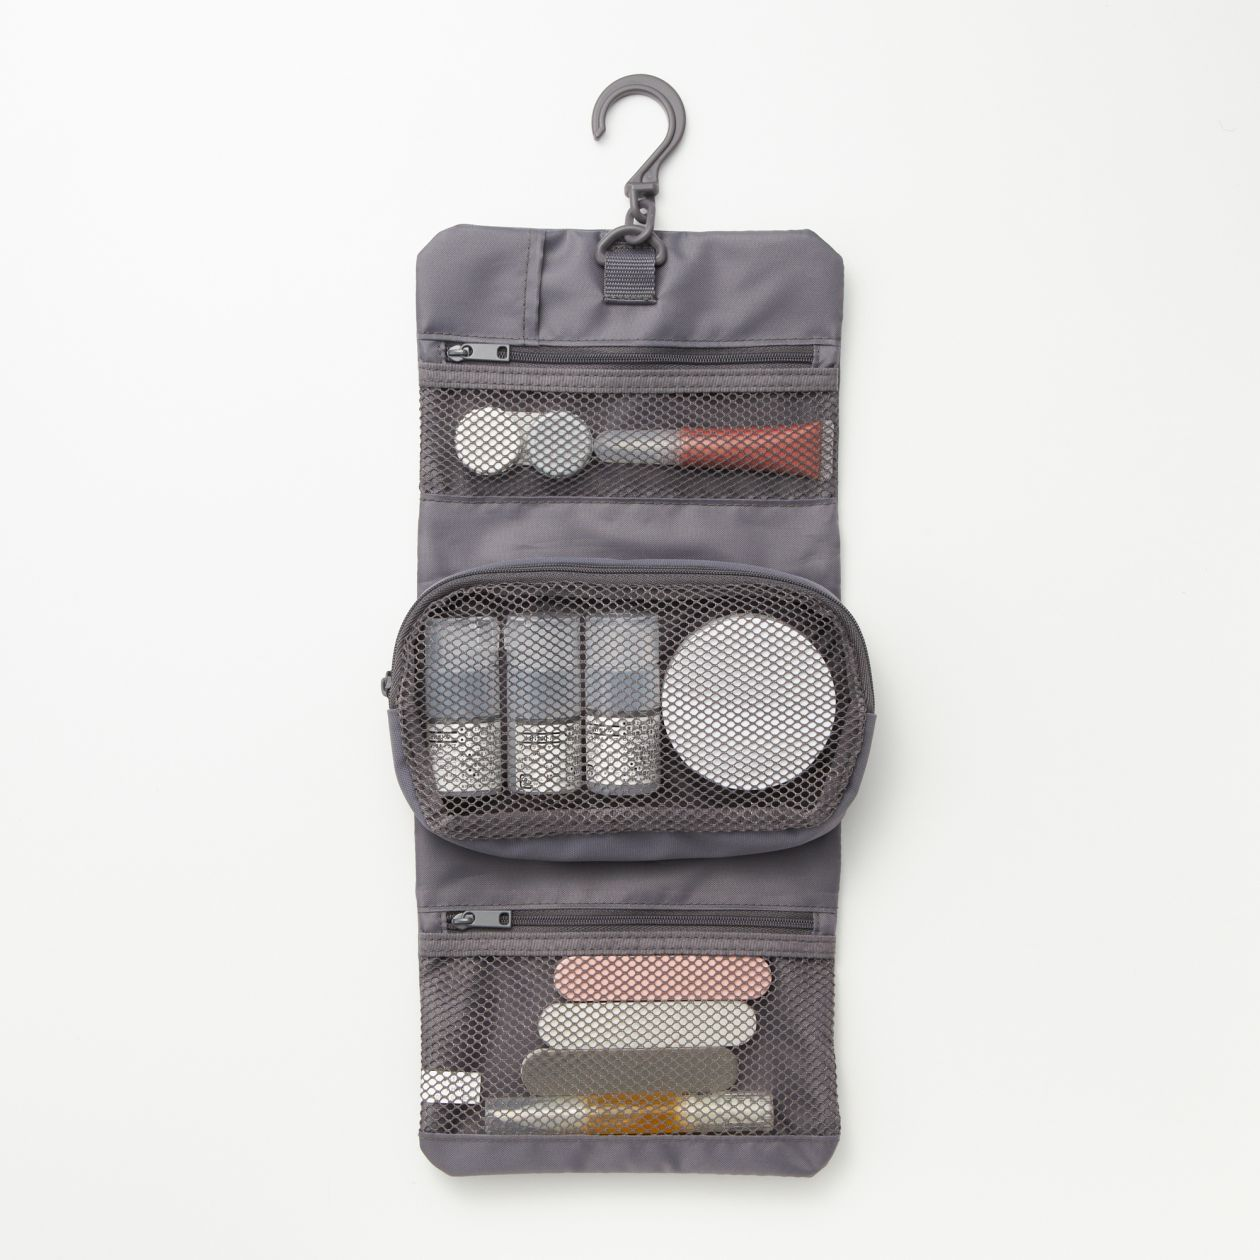 Hanging Case with Detachable Pouch. U.P. $26 | NOW 20% OFF till 29 May